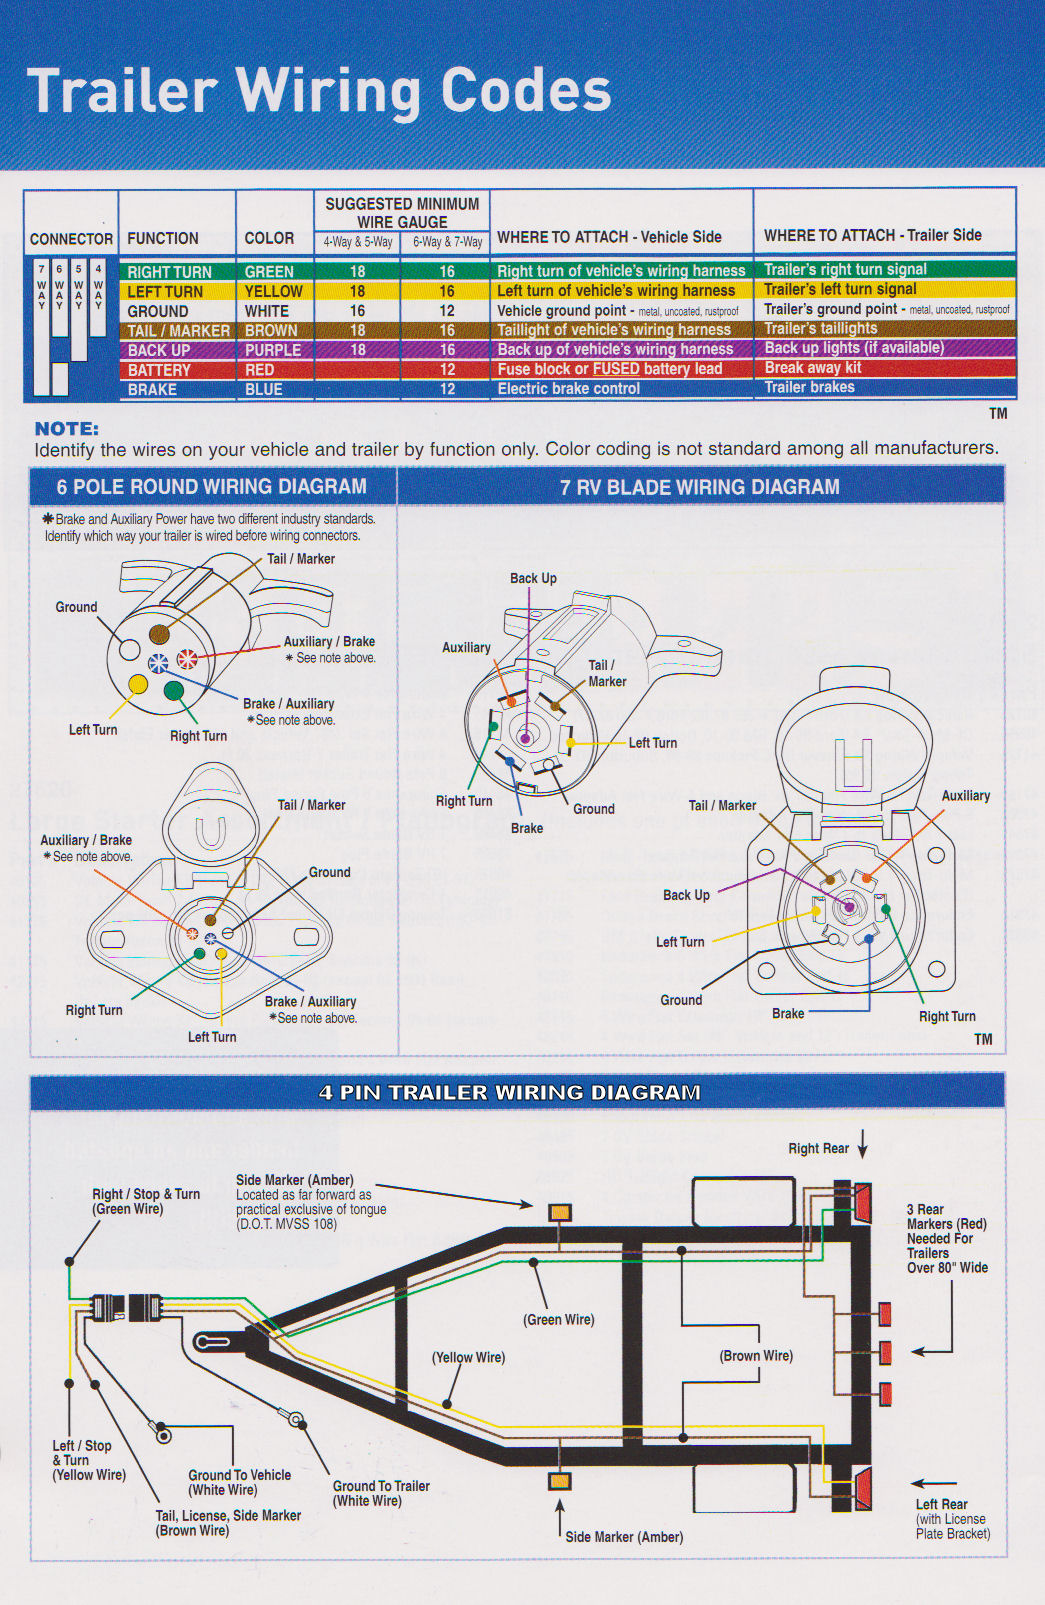 east trailer wiring diagram another blog about wiring diagram u2022 rh  twosoutherndivas co